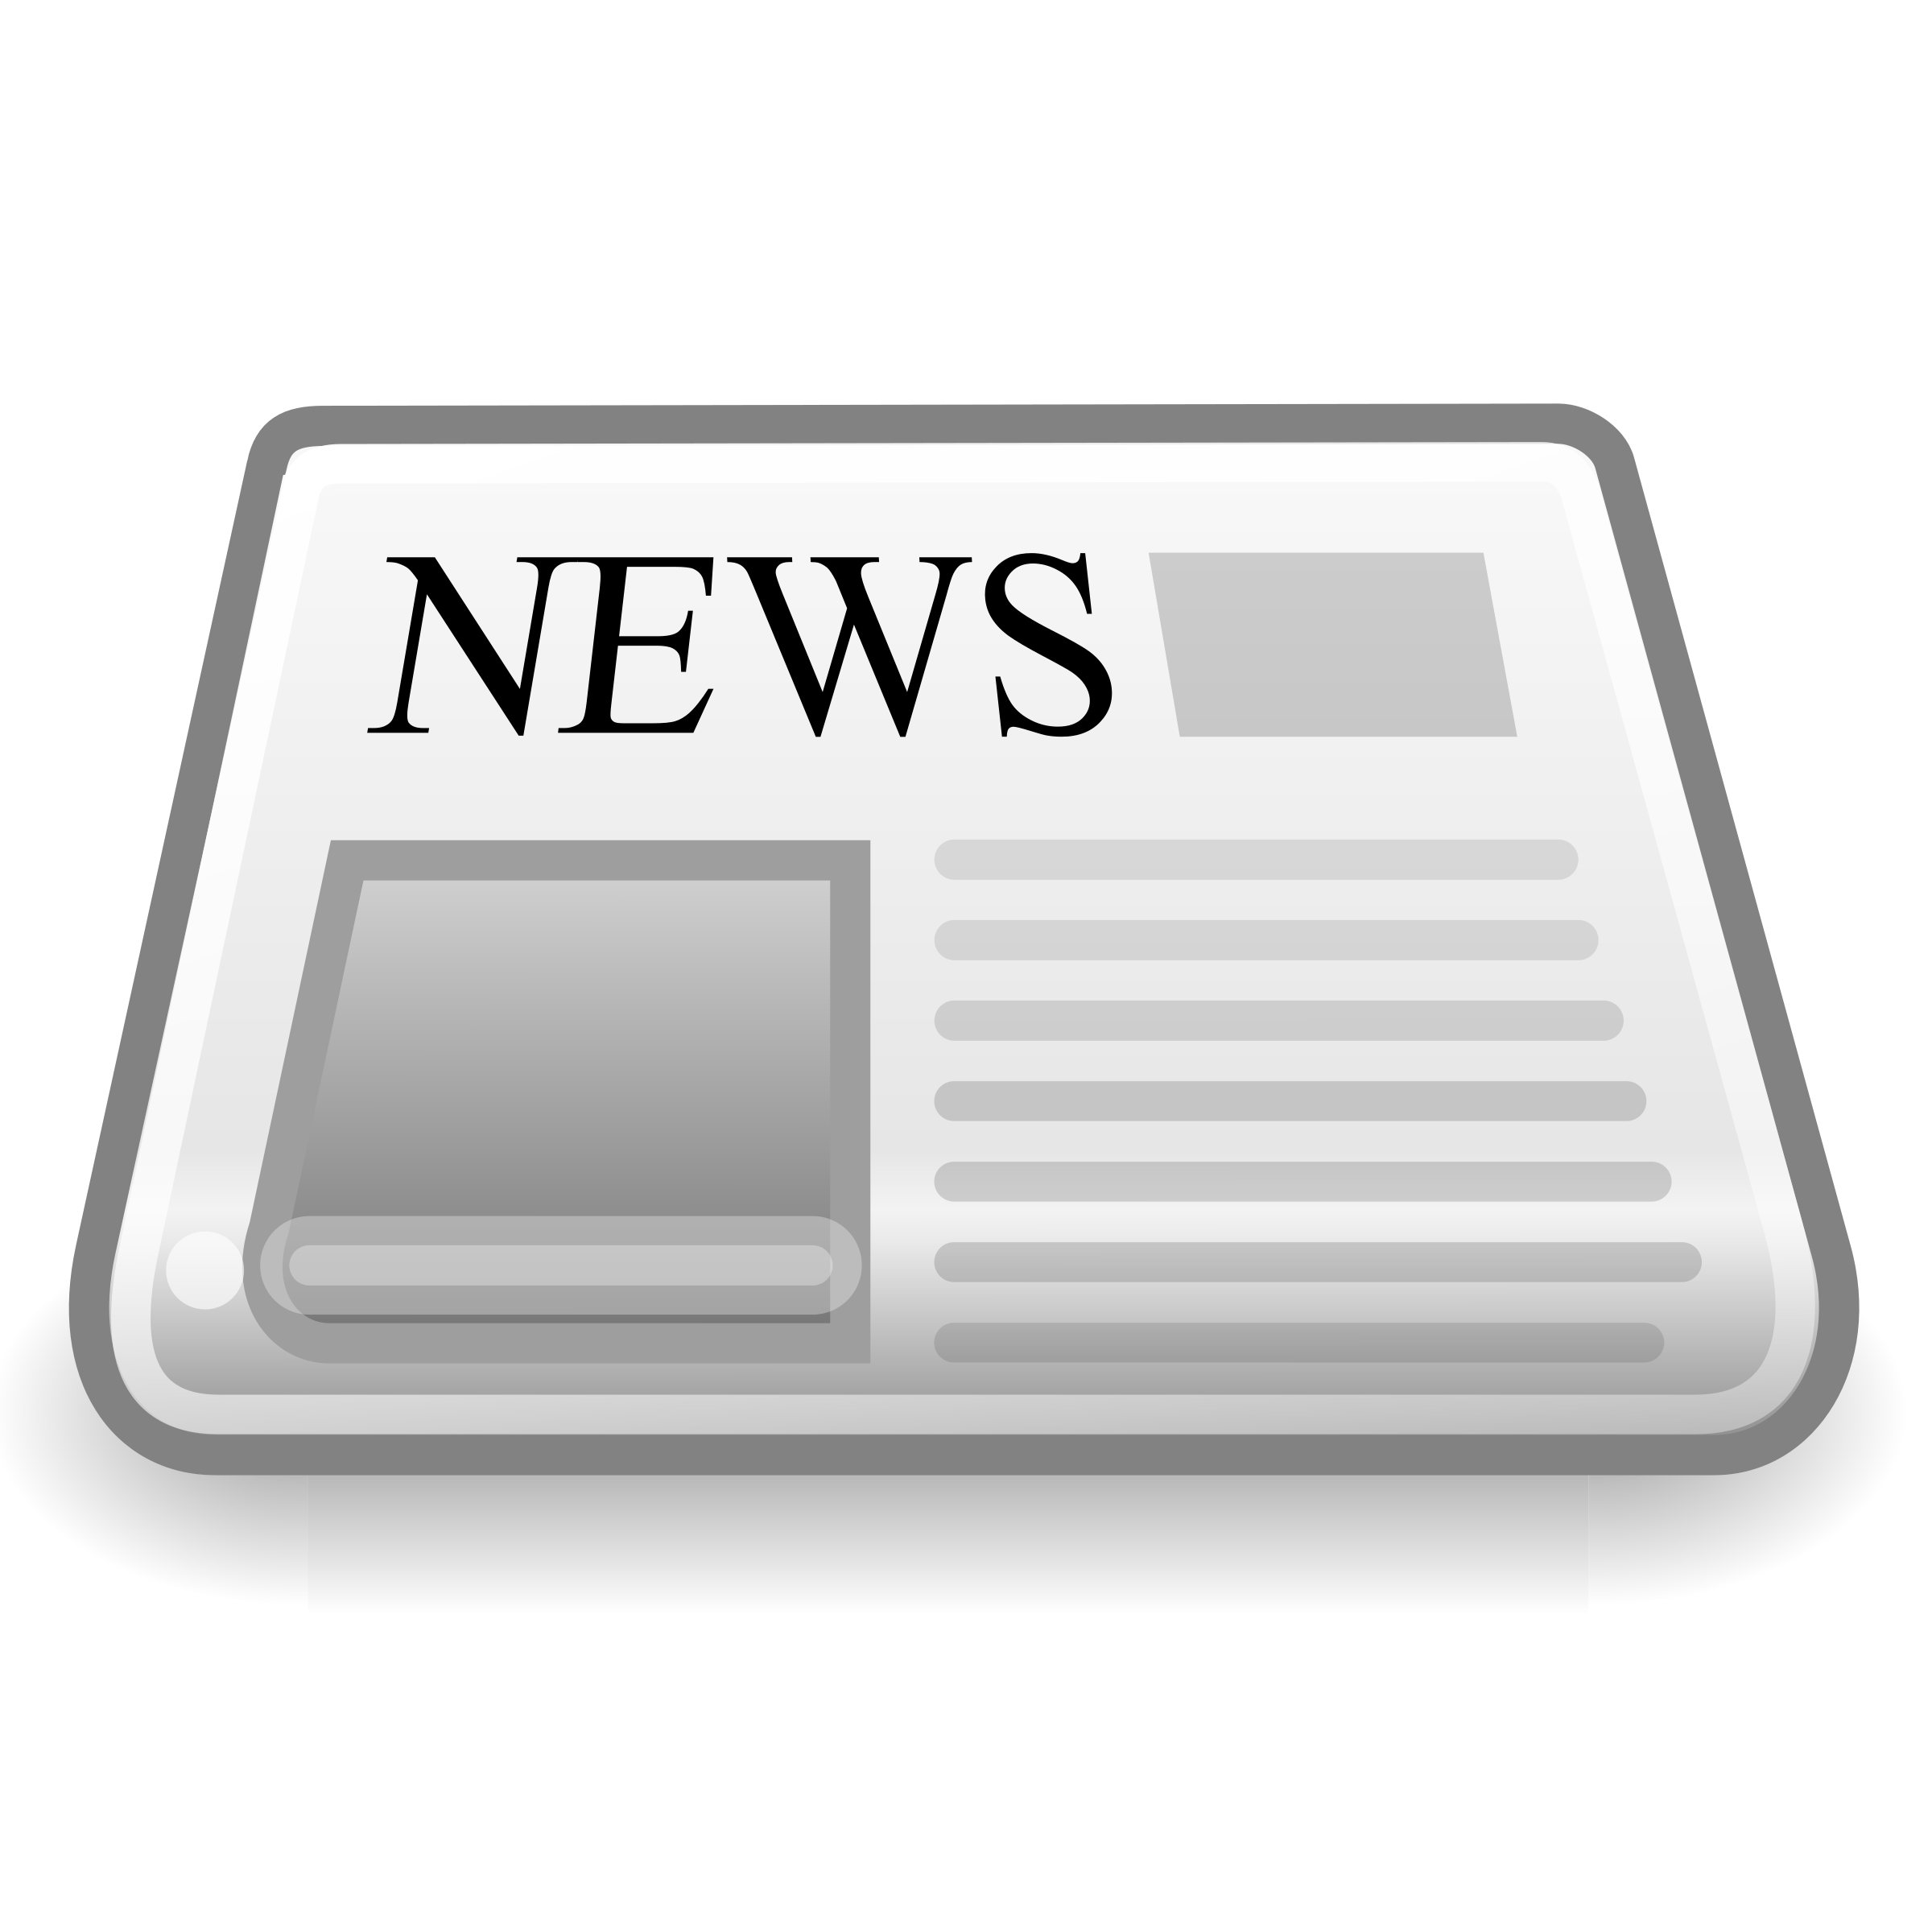 News paper icon big. Newspaper clipart edition